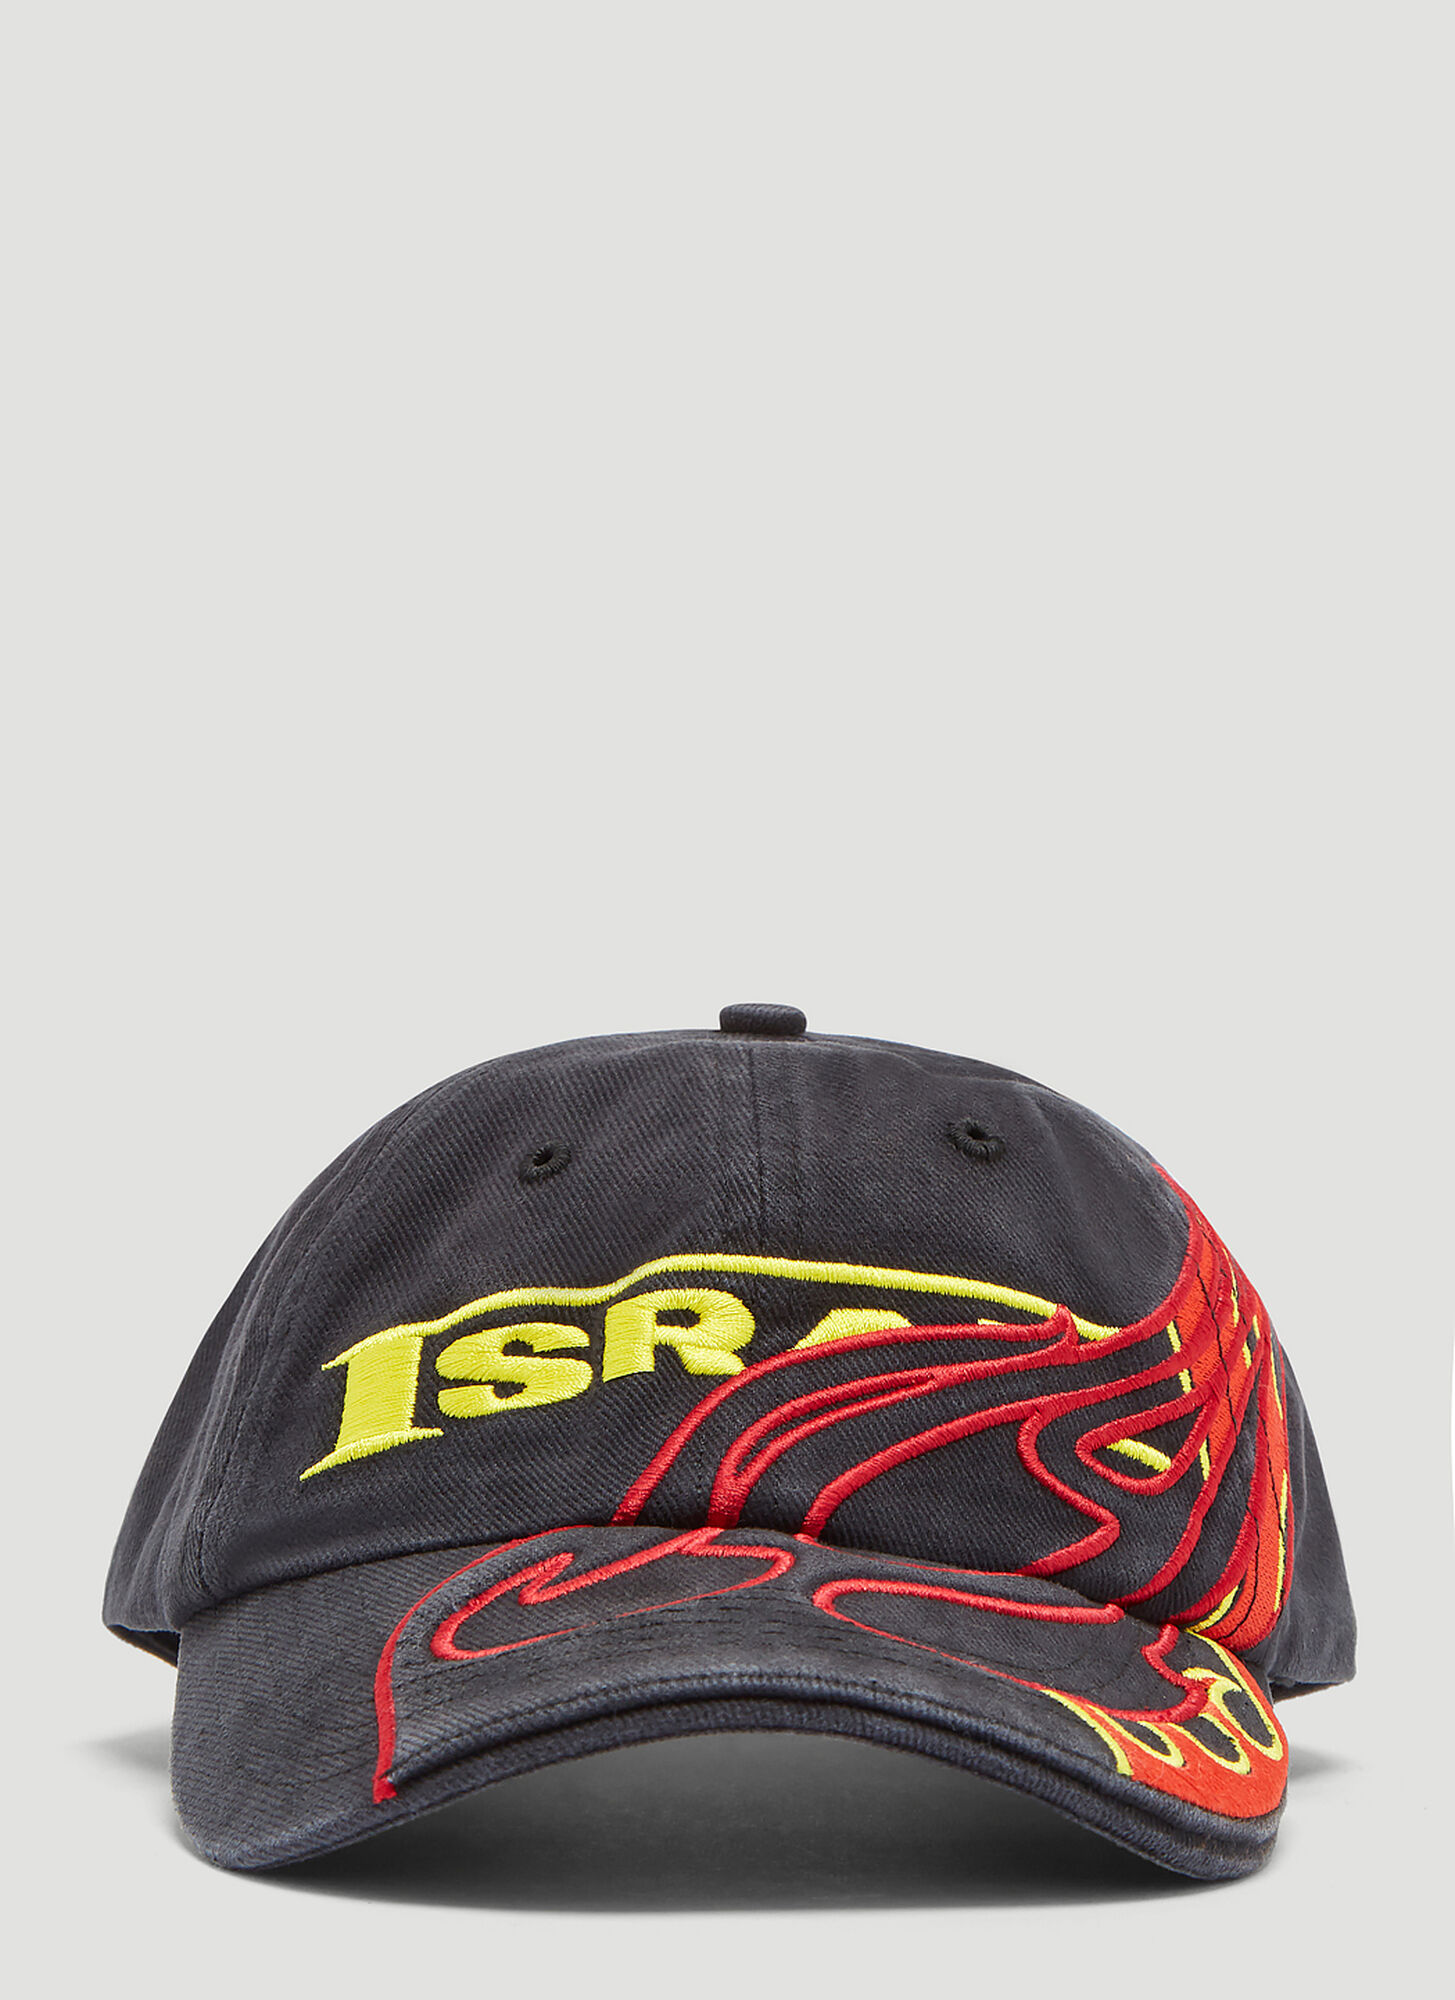 Vetements Cut-Up Cap in Black